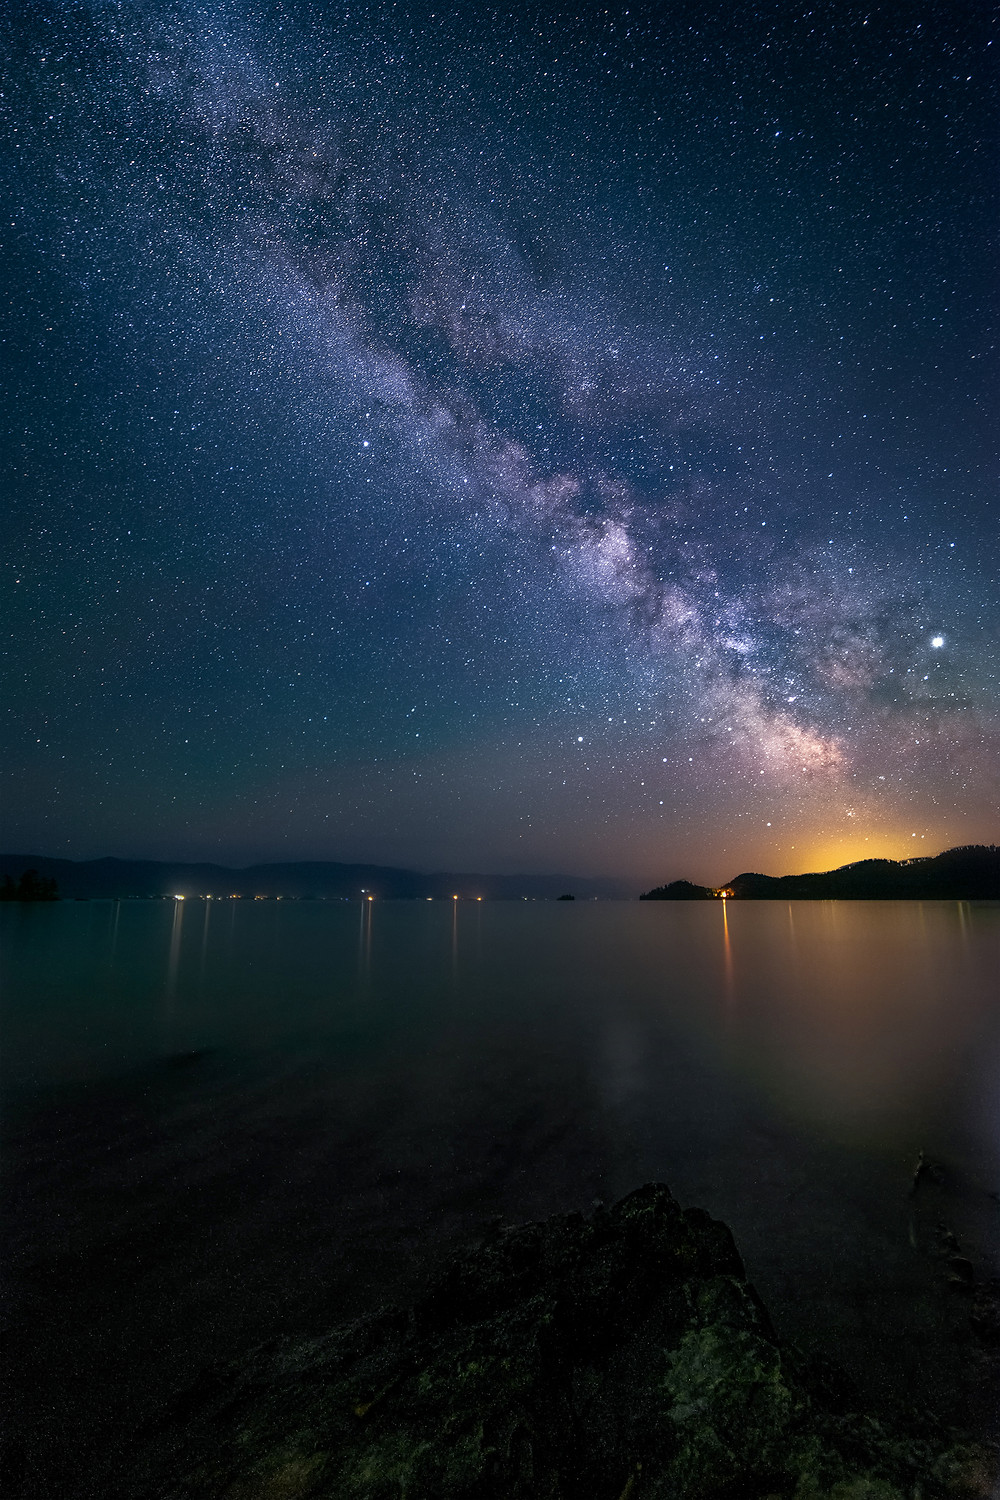 Milky Way in the night sky above Flathead Lake from West Shore State Park, Montana.